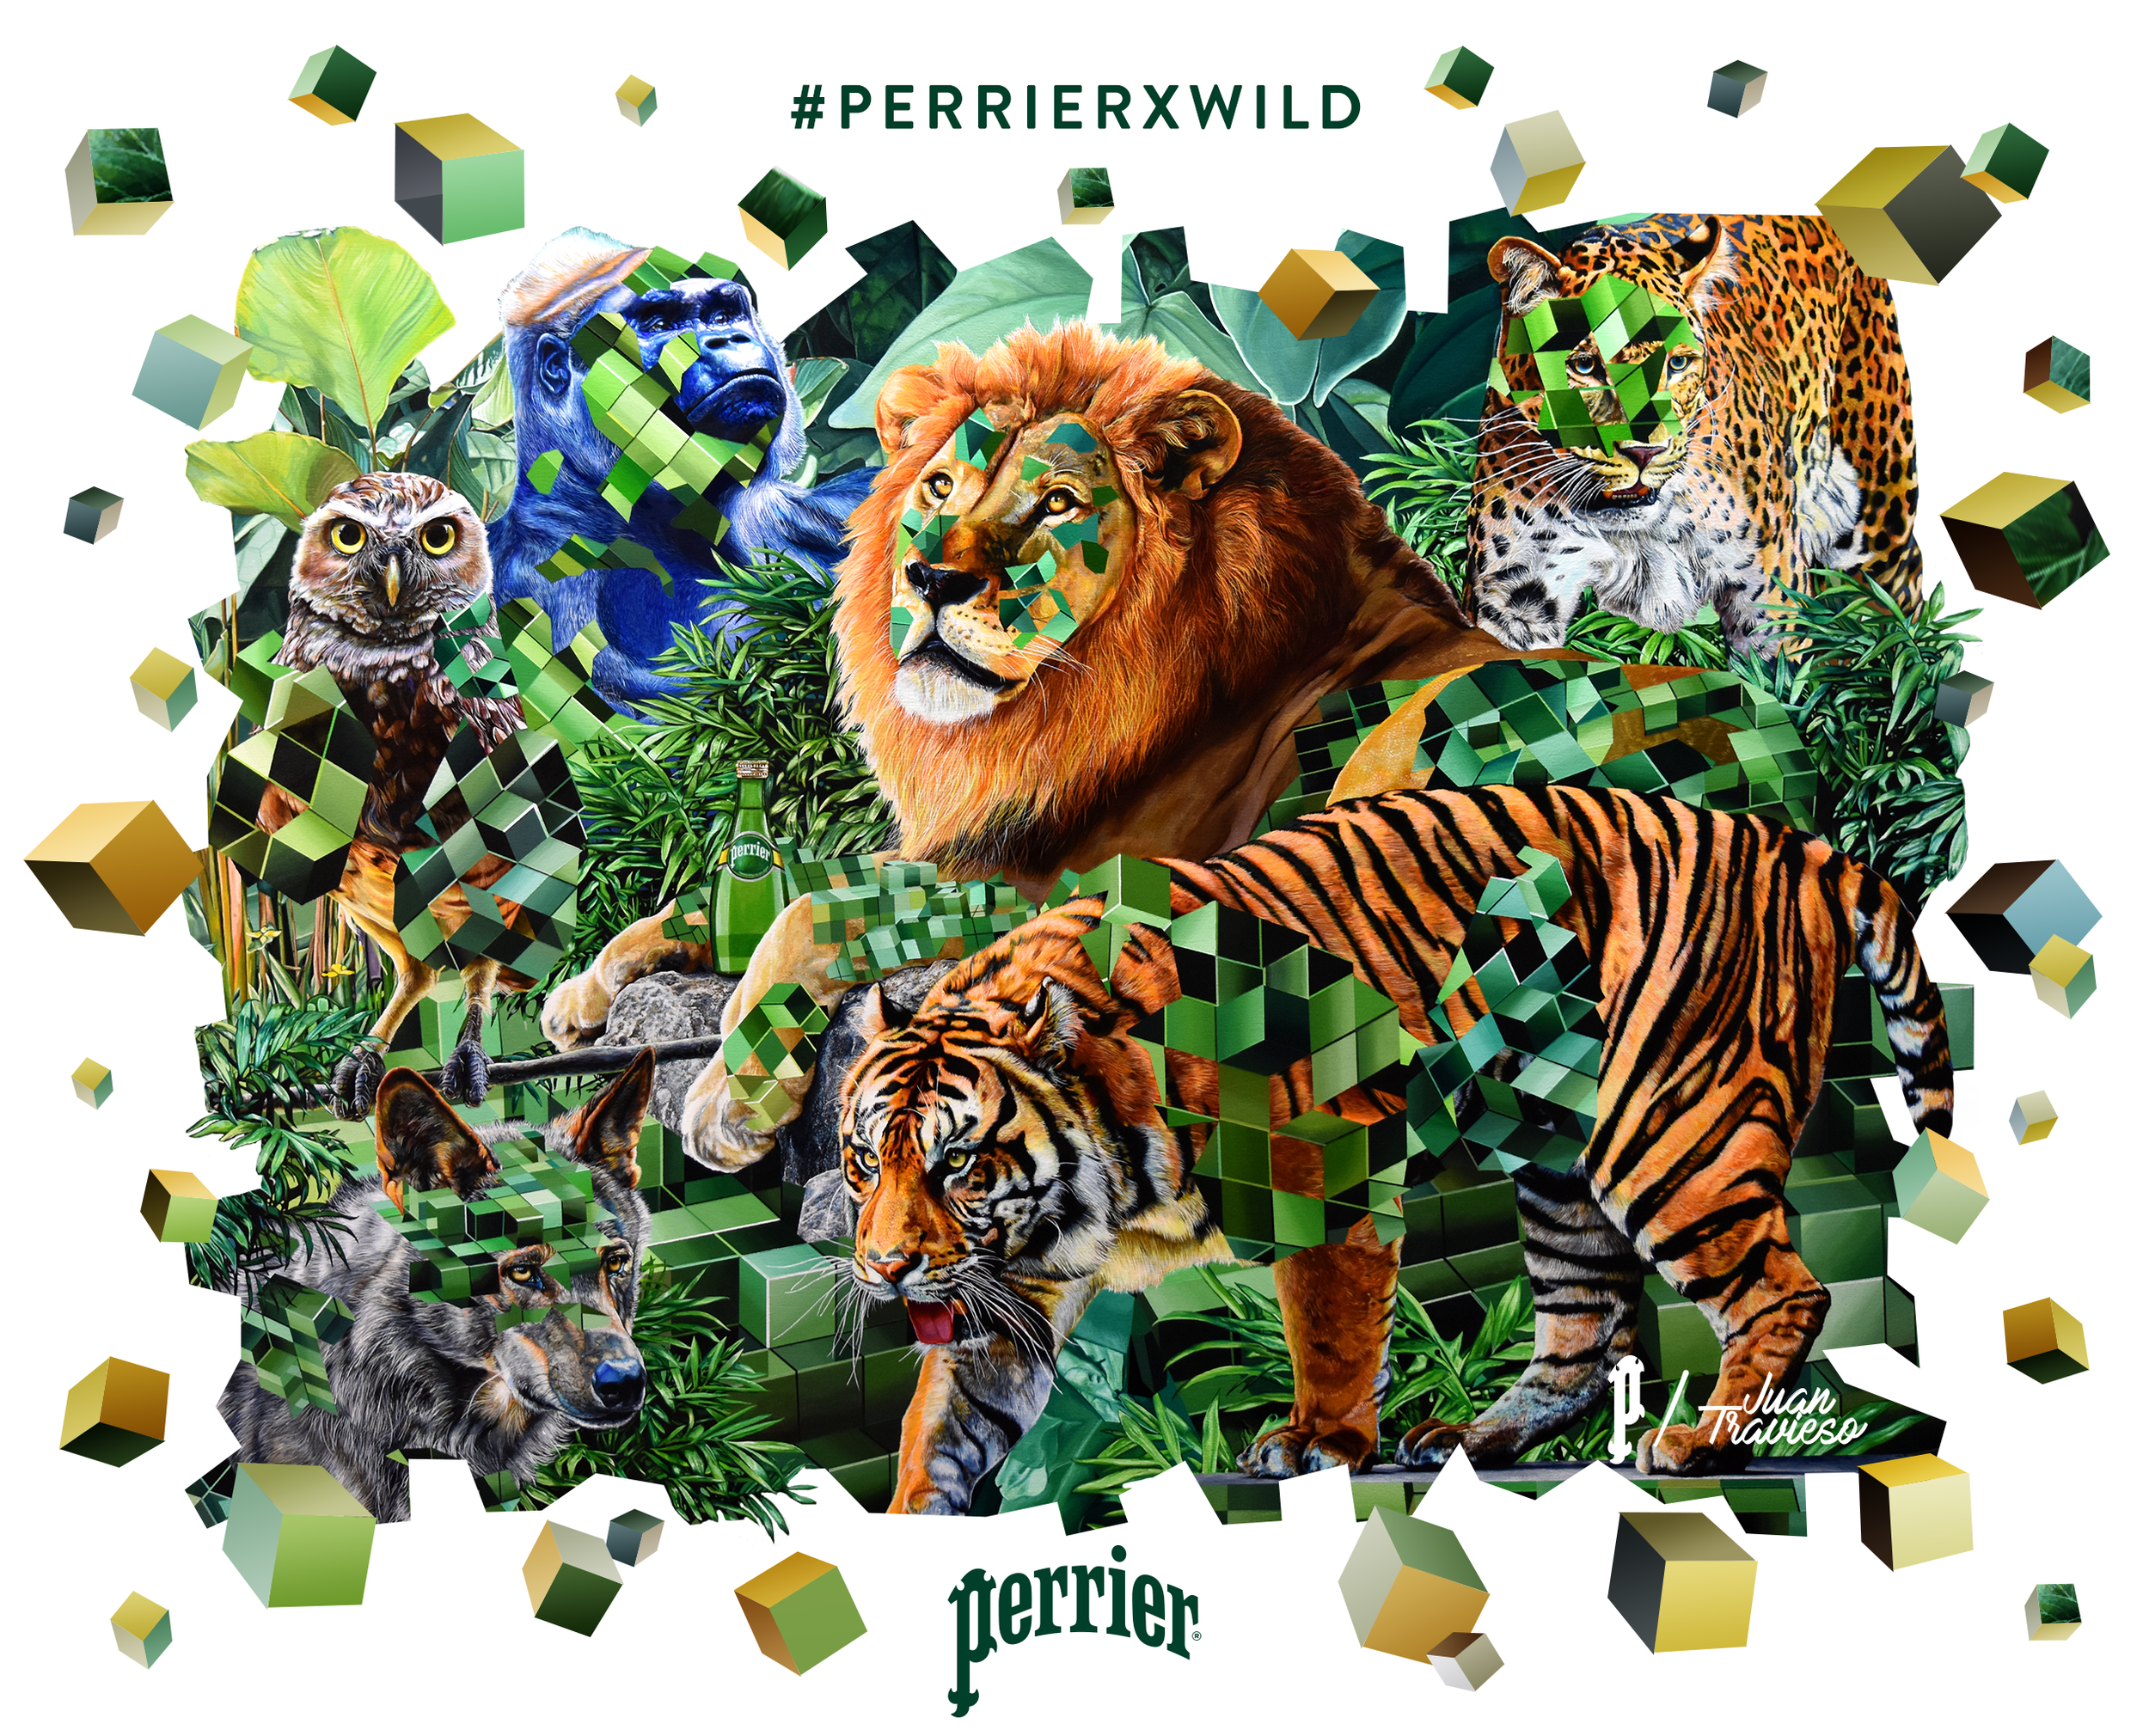 PERRIER WILD - WITH JUAN TRAVIESO